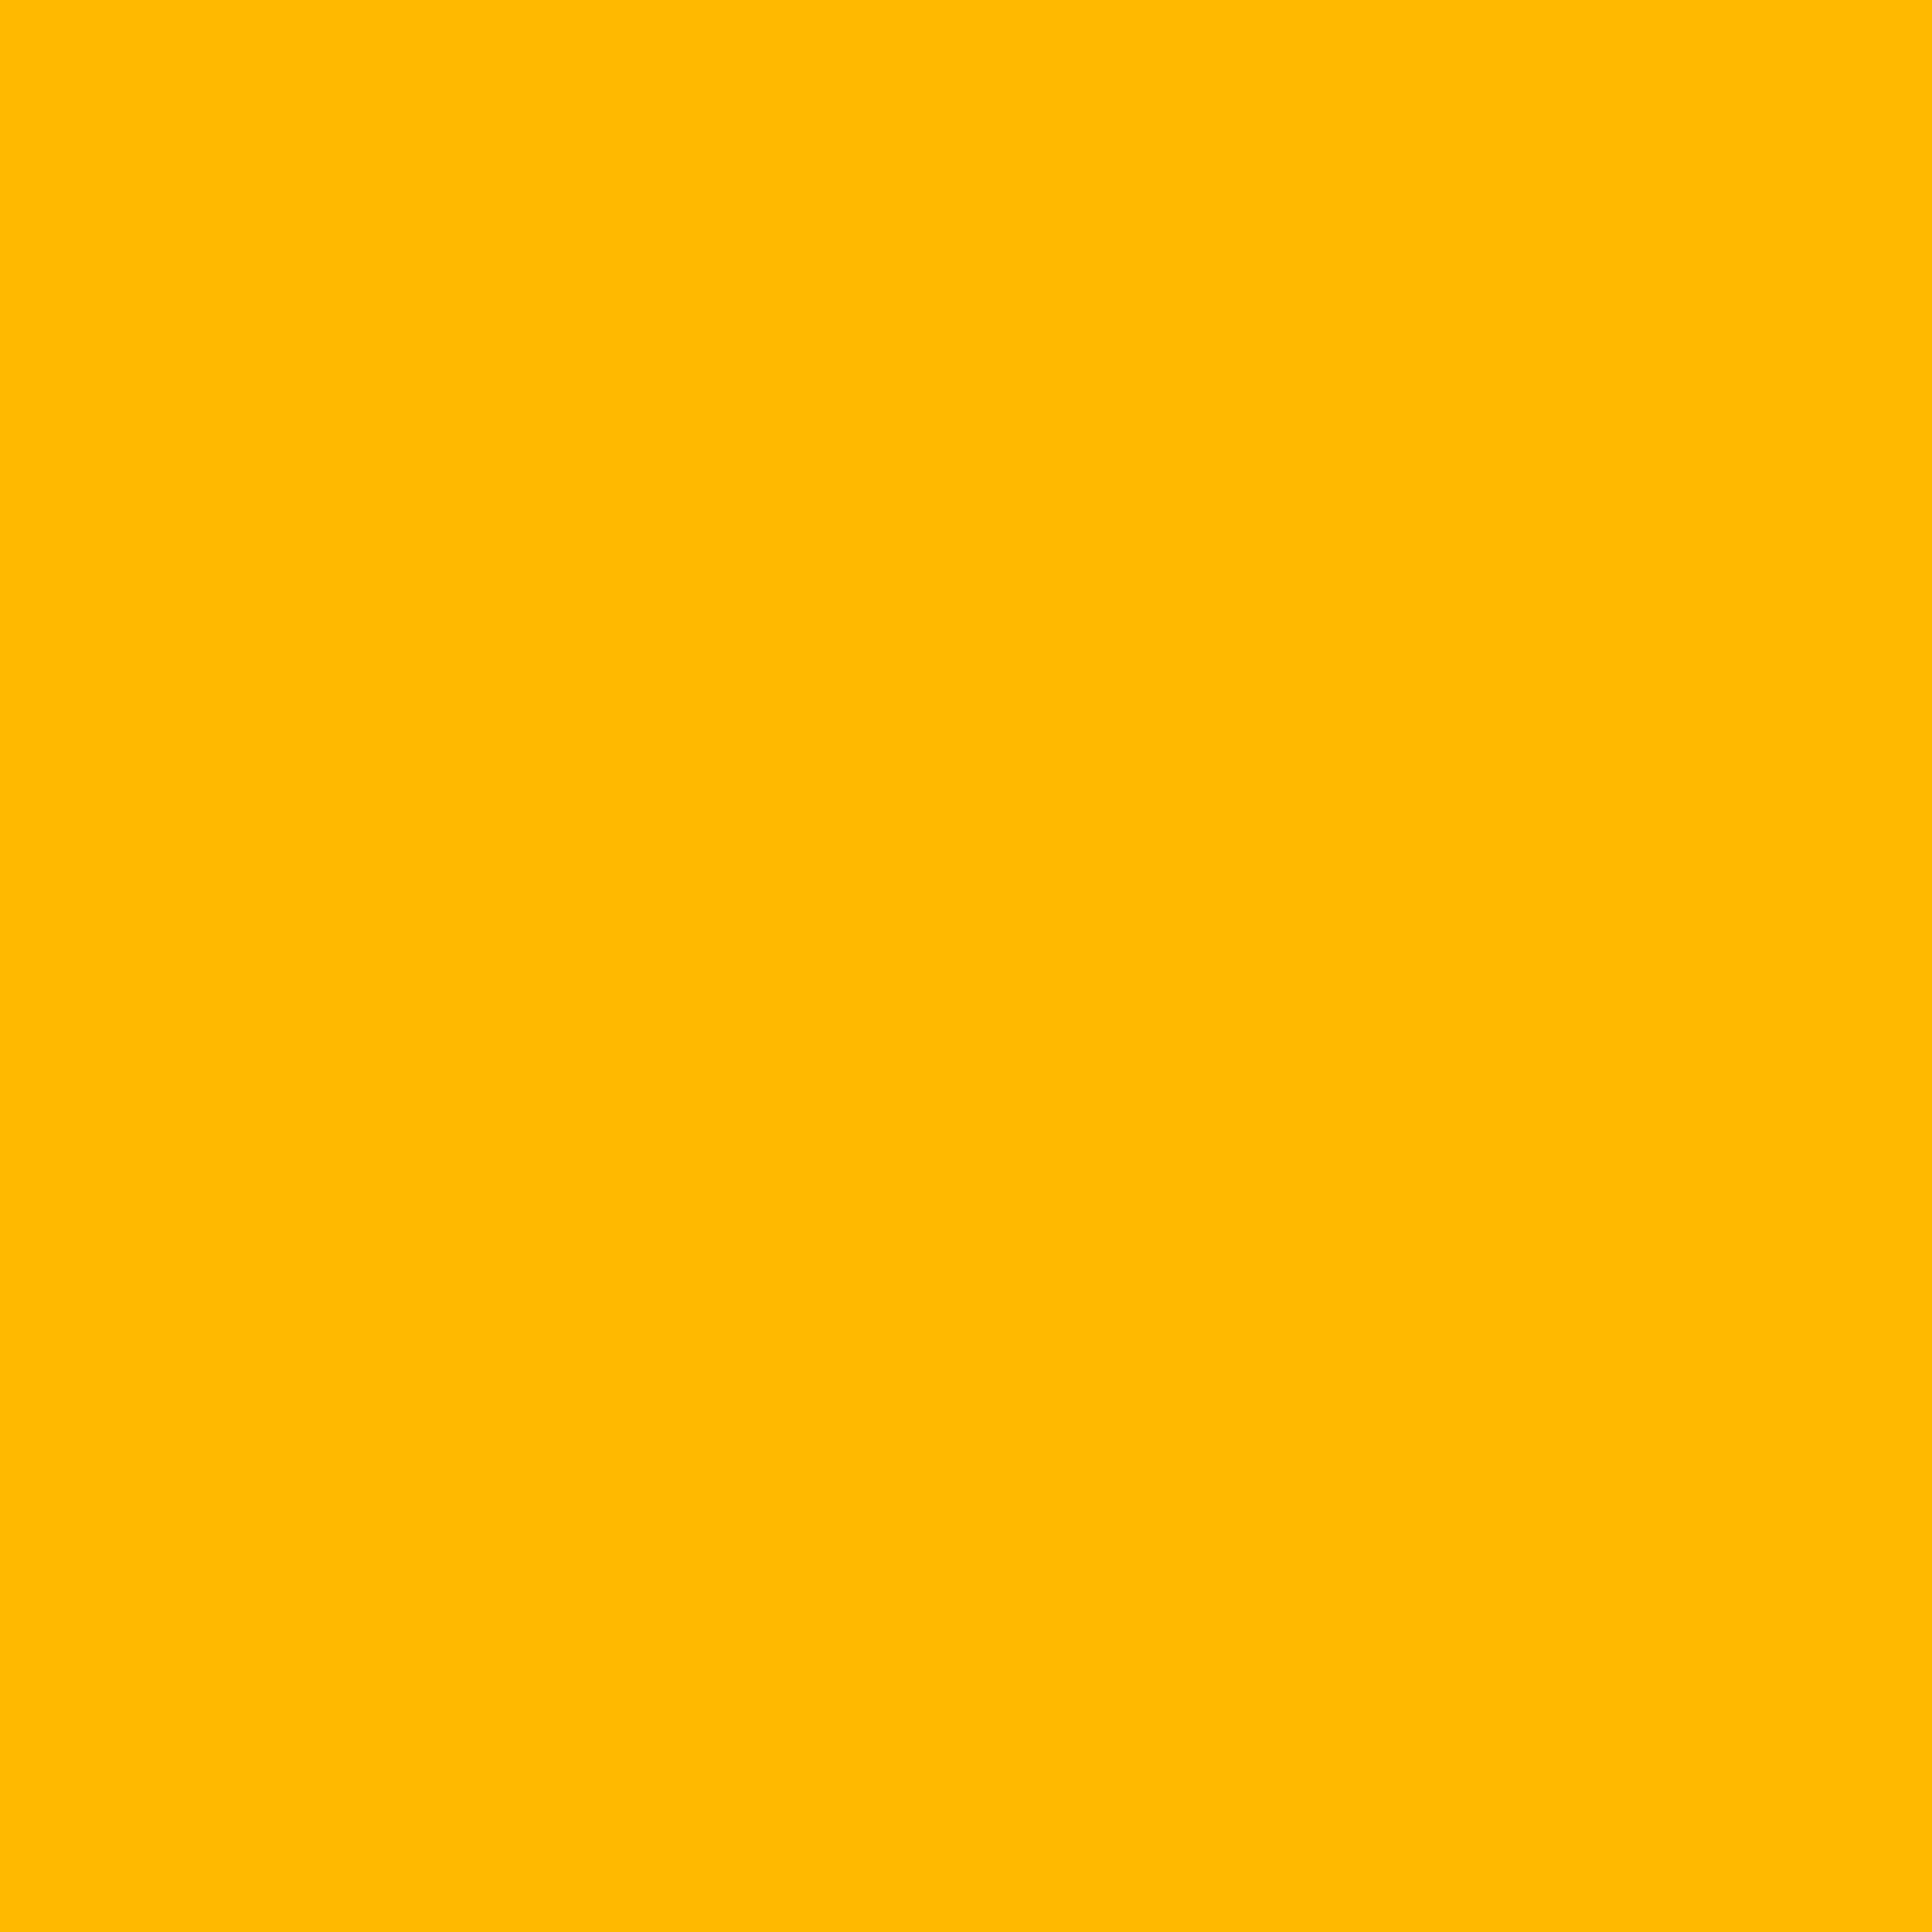 3600x3600 Selective Yellow Solid Color Background